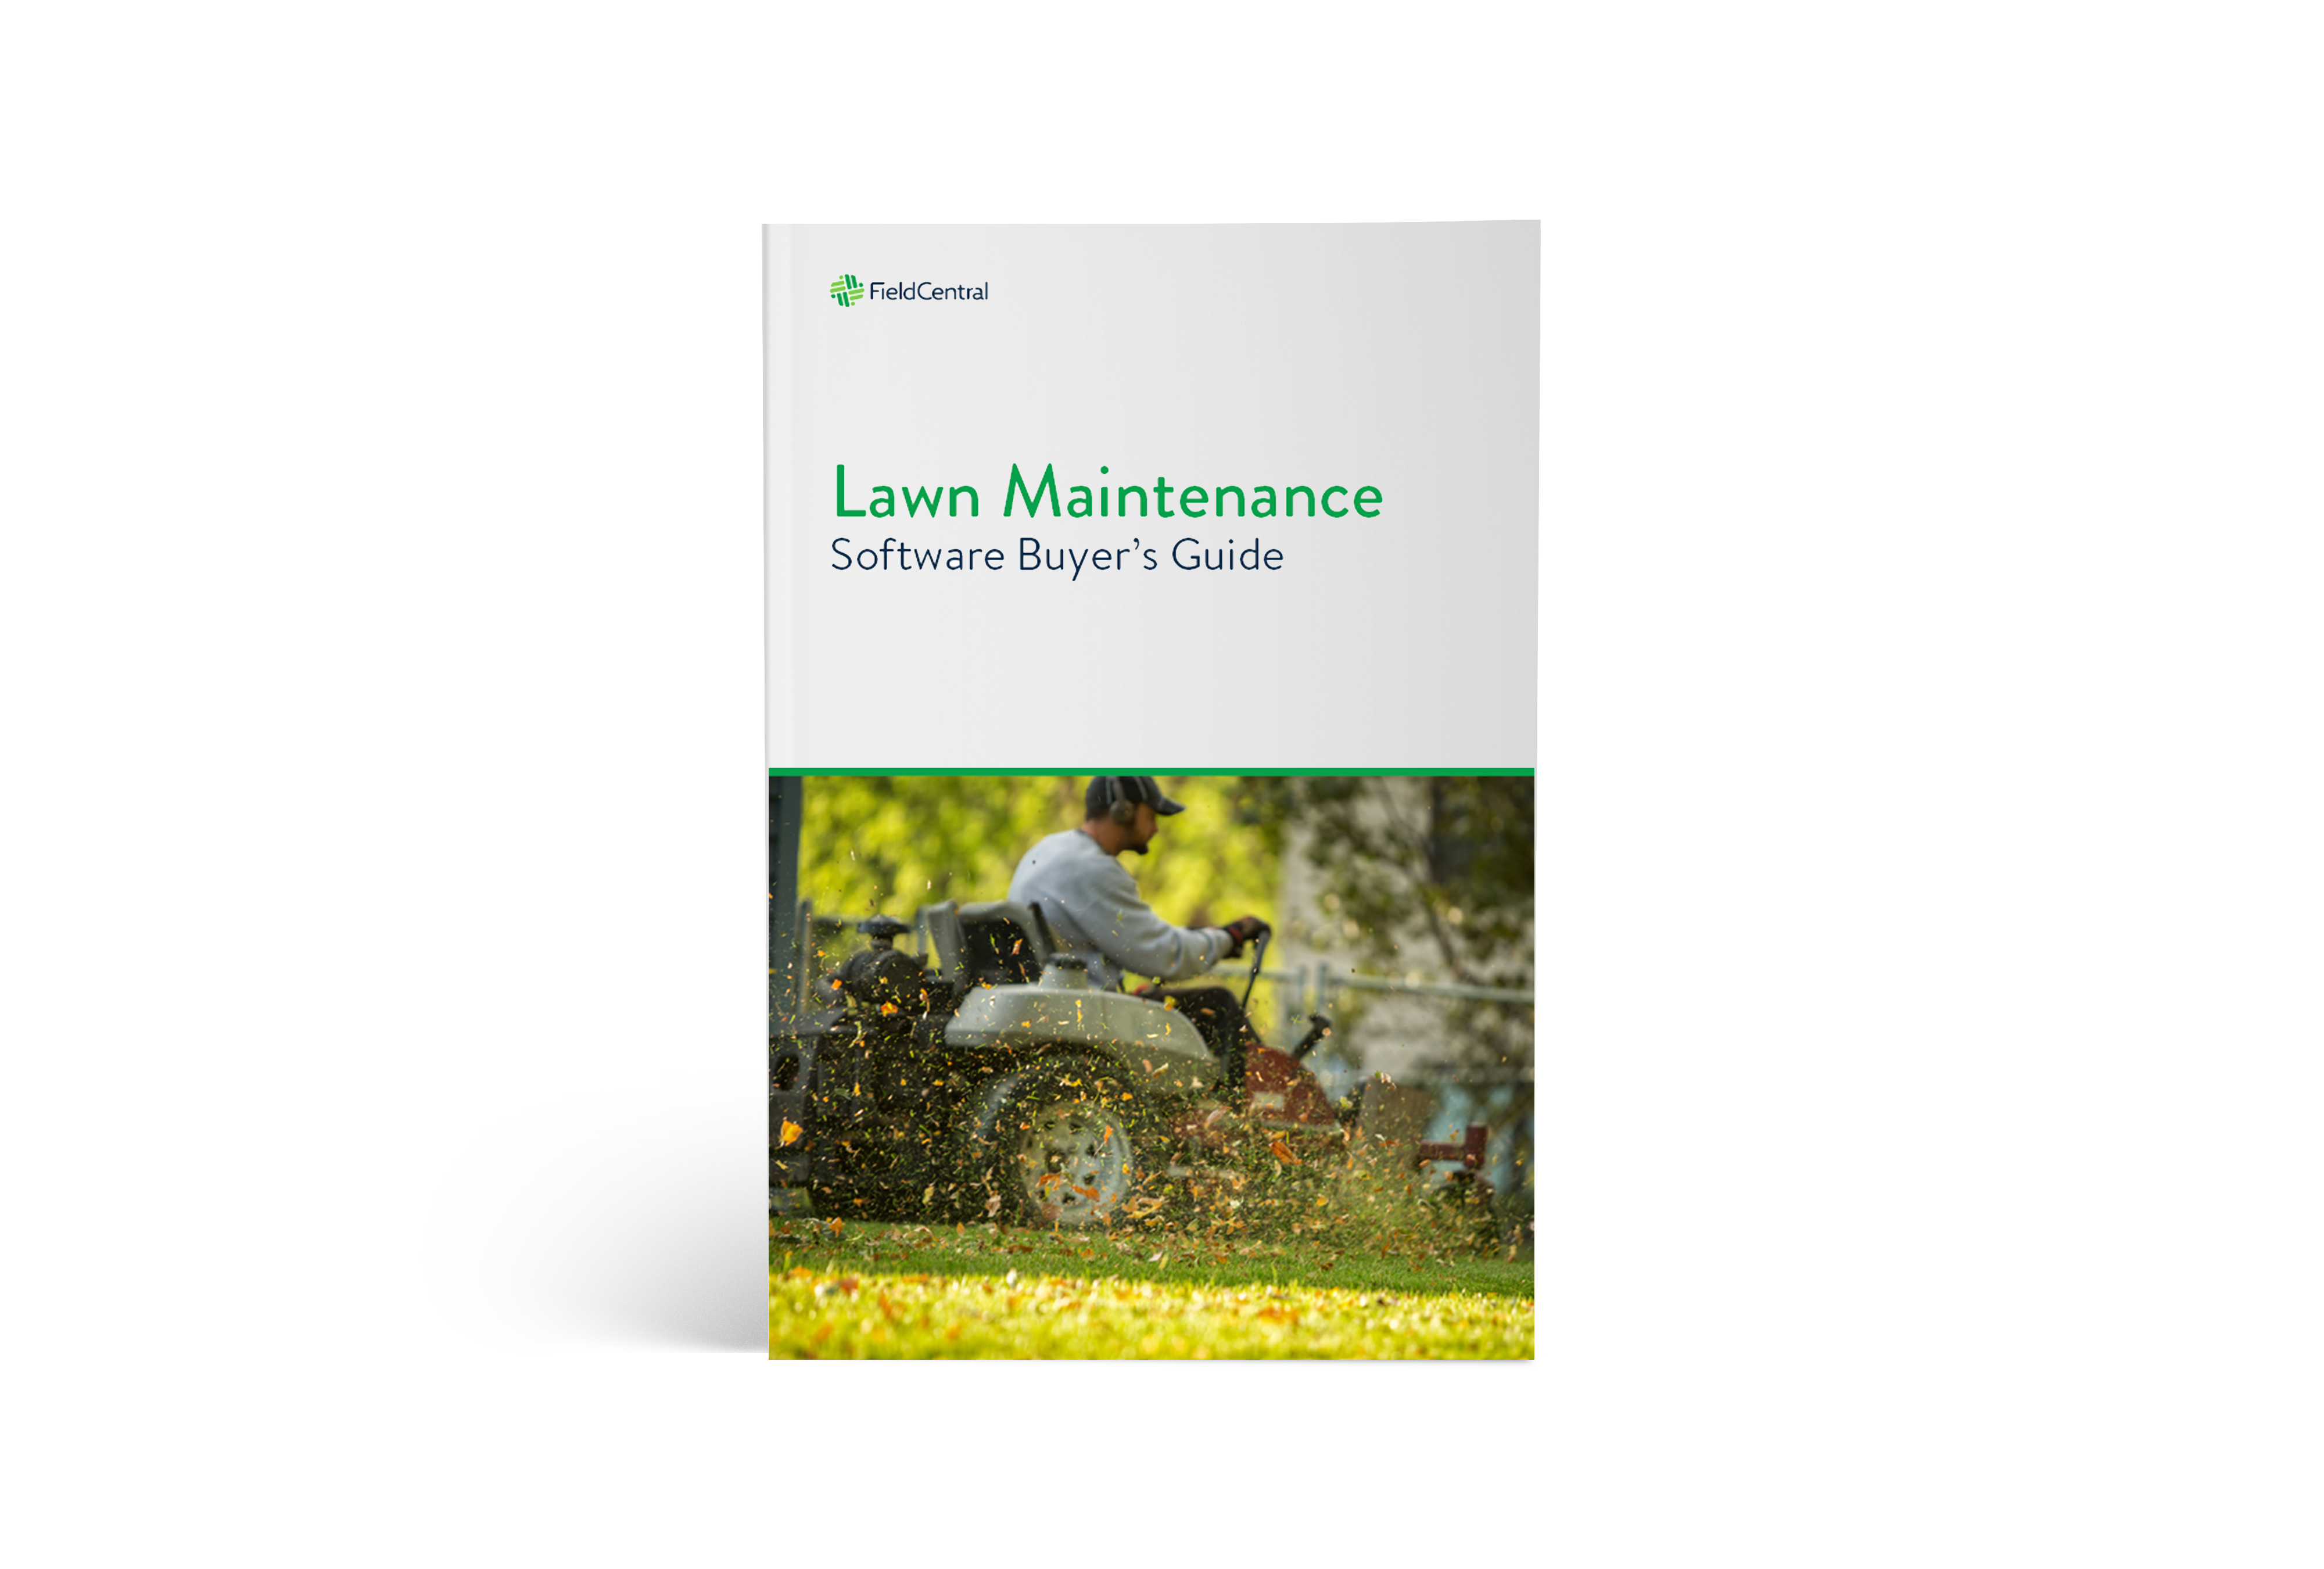 Lawn Maintenance Software Buyer's Guide ebook cover.